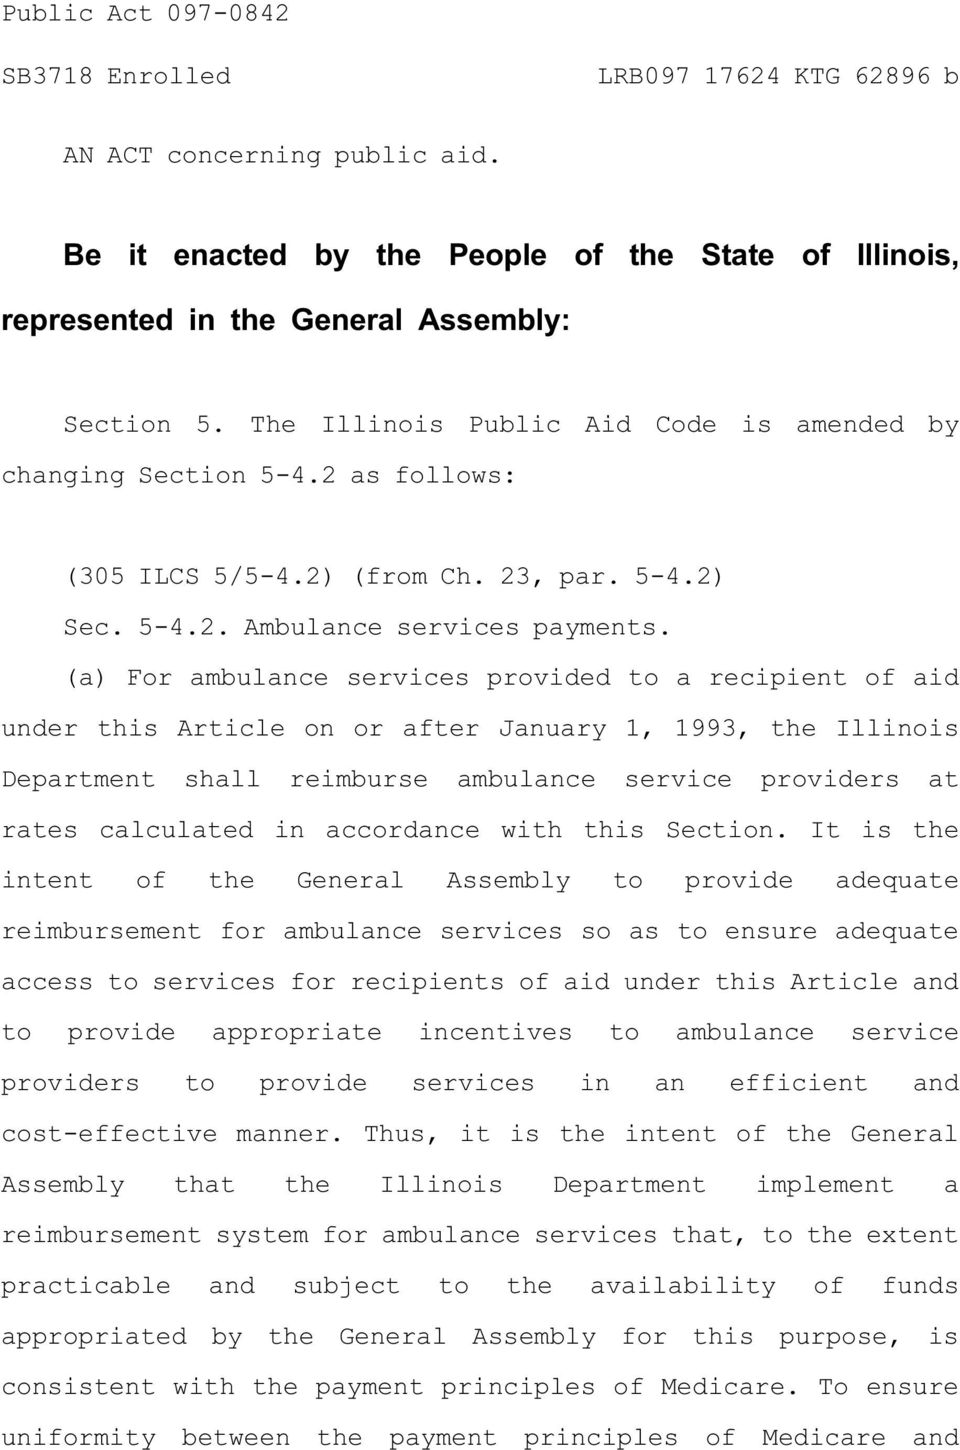 (a) For ambulance services provided to a recipient of aid under this Article on or after January 1, 1993, the Illinois Department shall reimburse ambulance service providers at rates calculated in